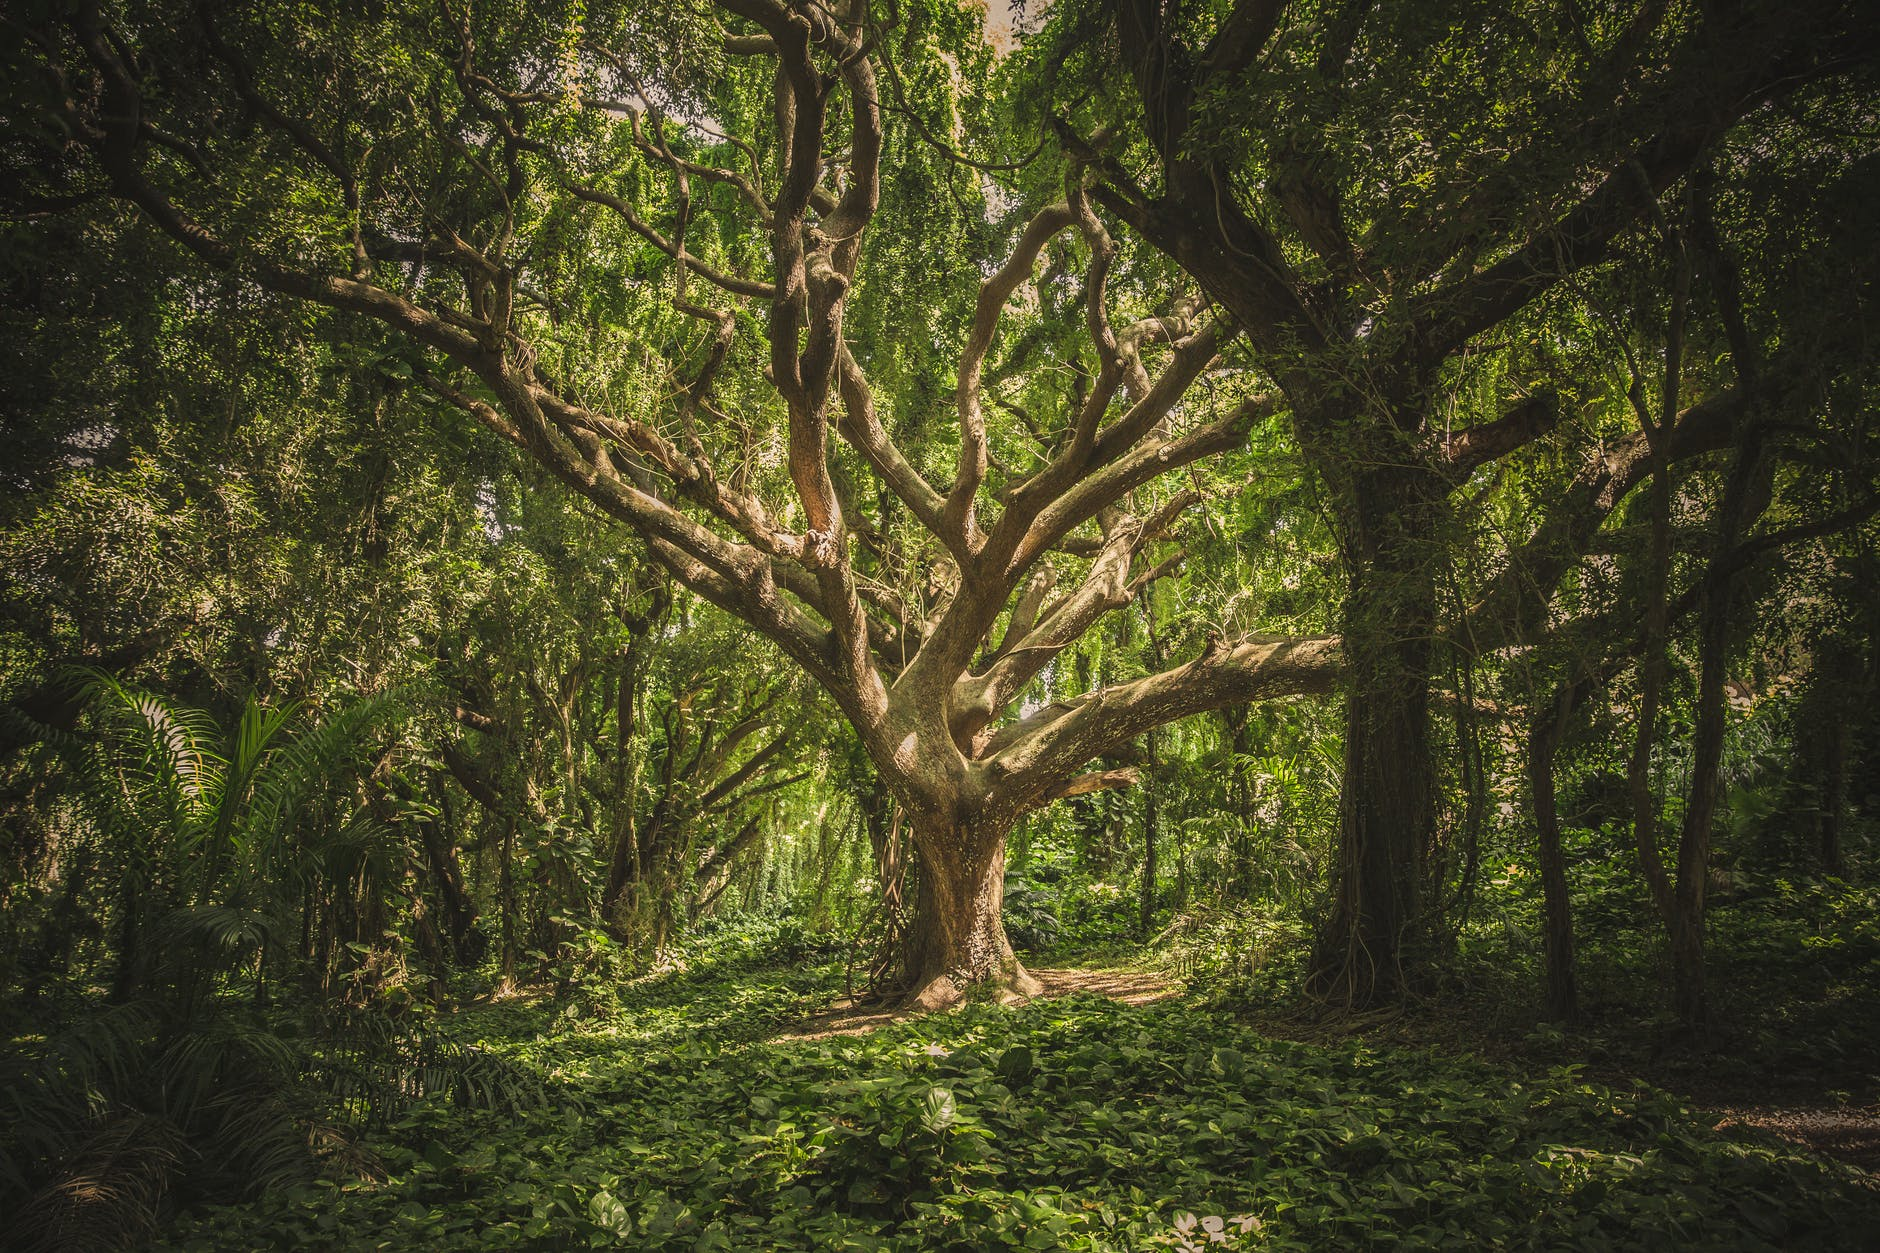 An old tree in a green forest